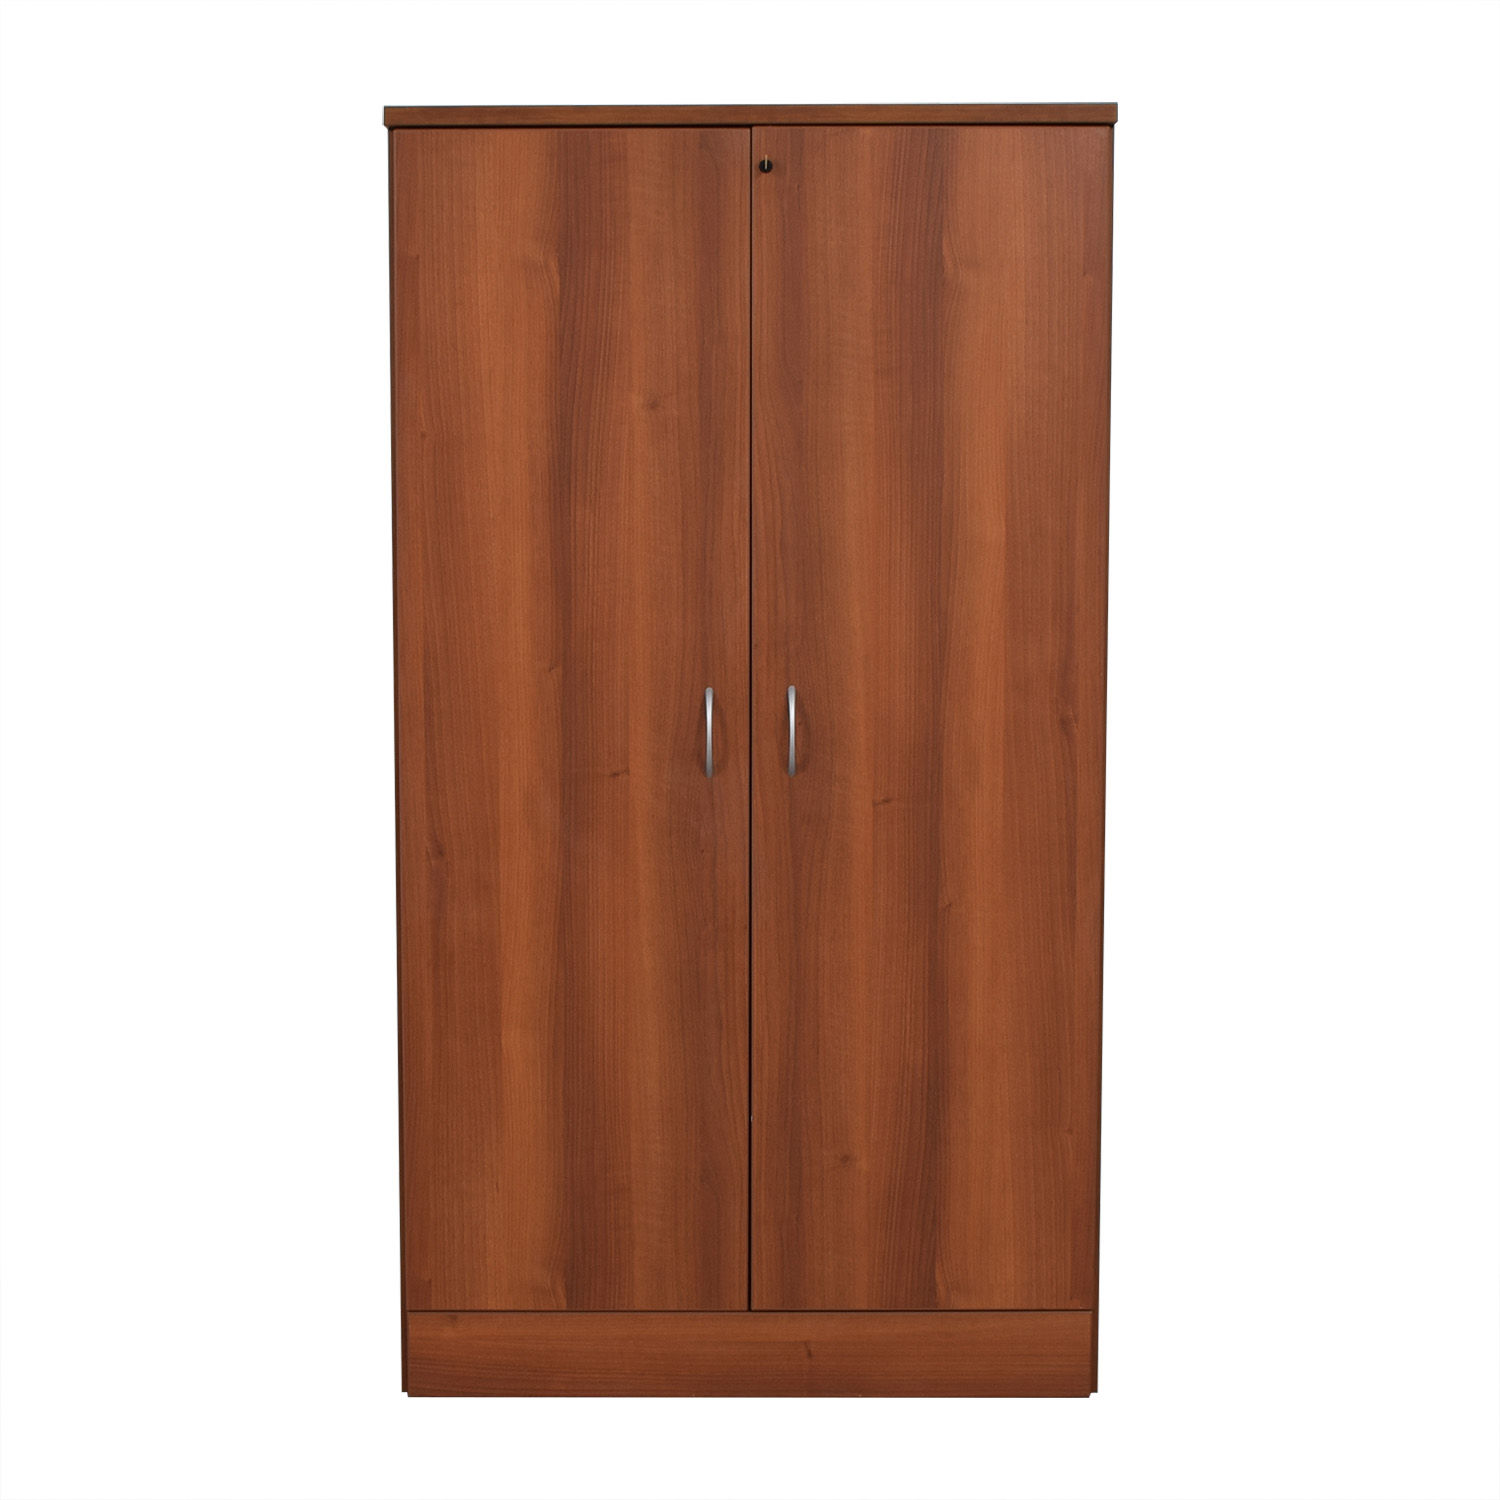 Office Wardrobe Cabinet nj